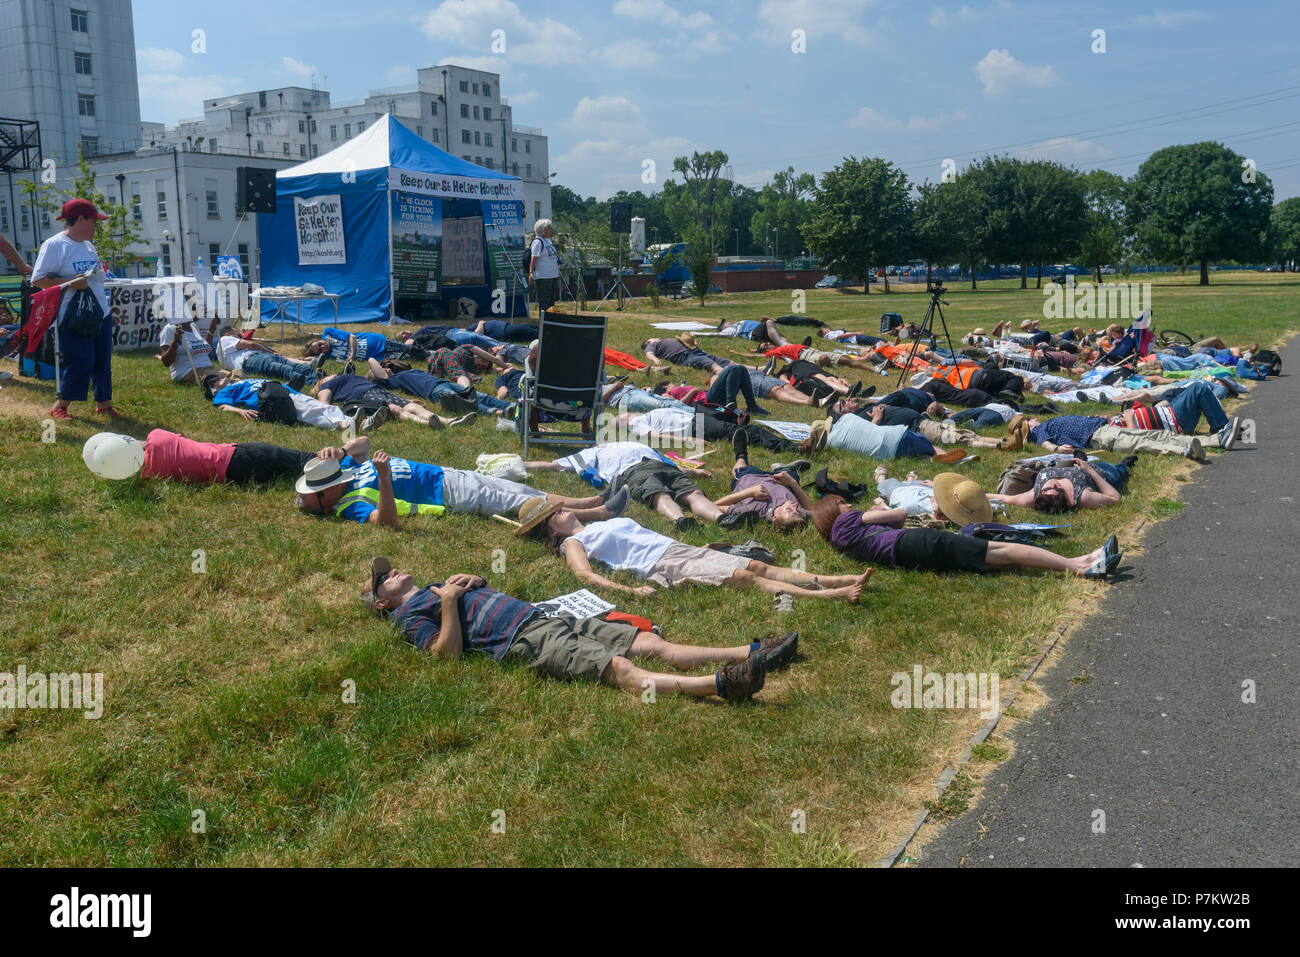 London, UK. 7th July 2018.  People take part in a short i'die-in' at the end of the march by Keep Our St Helier Hospital (KOSHH) campaigners against the closure of acute facilities at Epsom and St Helier Hospitals in south Londonl. They had marched from Sutton to a rally there celebrating the 70th birthday of the NHS and opposing hospital closures. Credit: Peter Marshall/Alamy Live NewsStock Photo